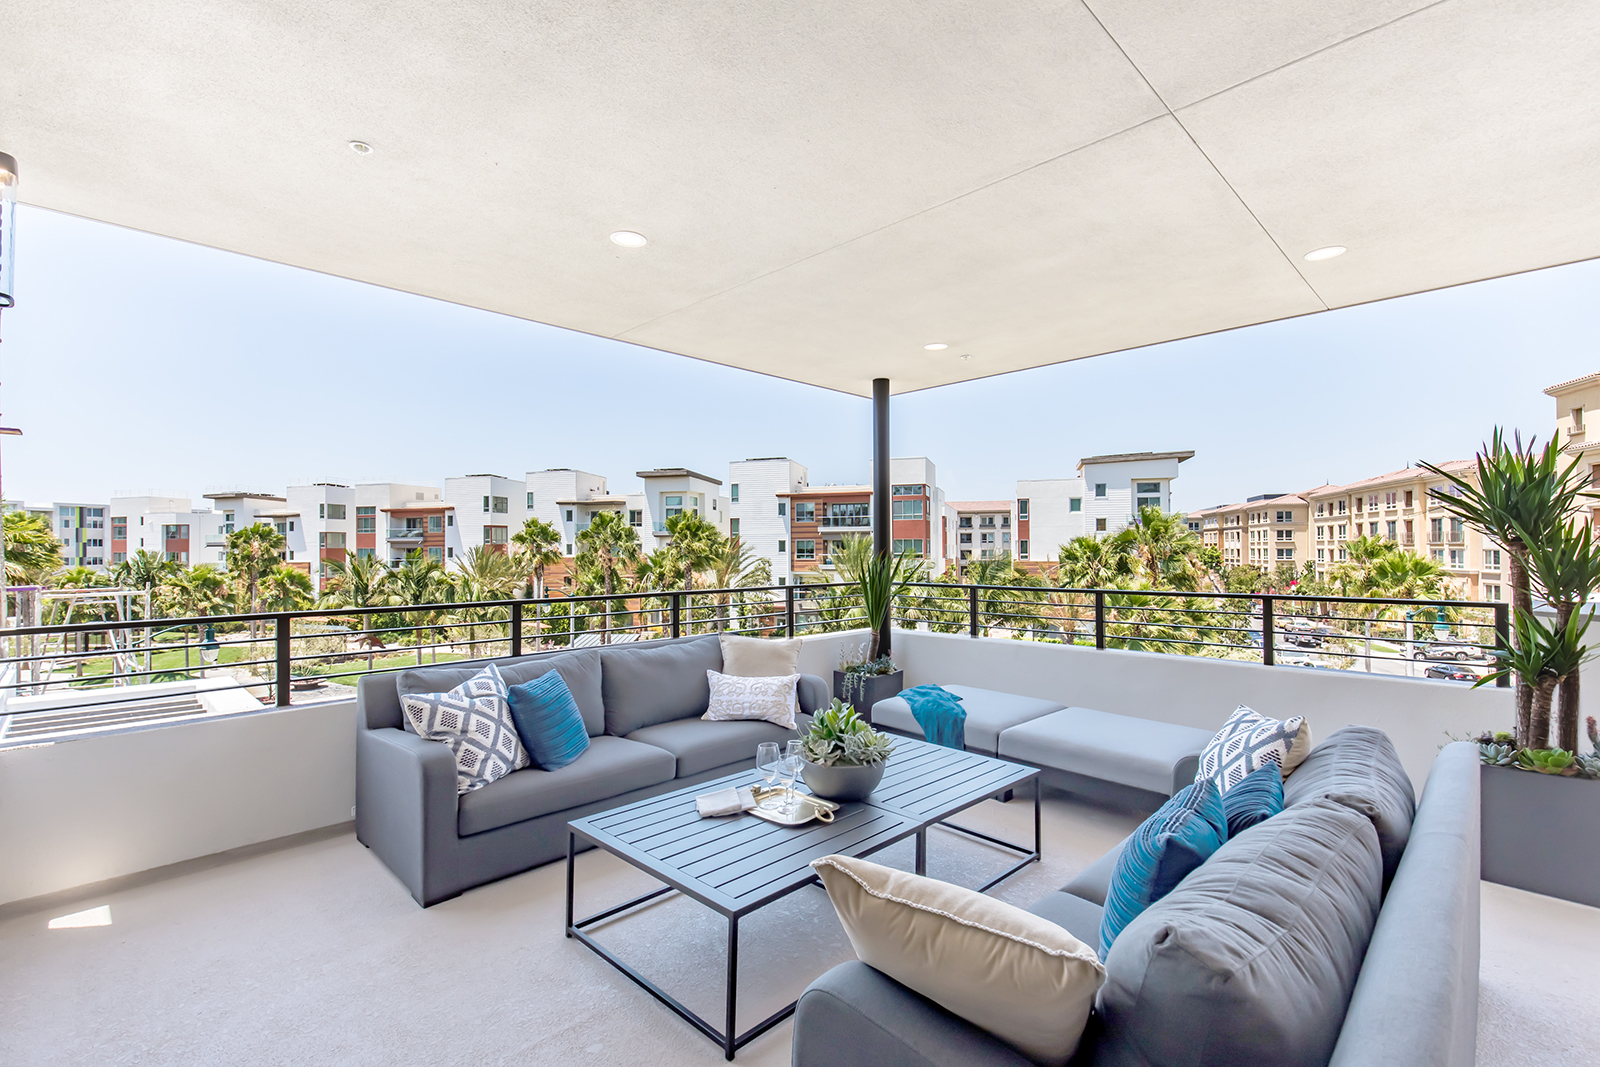 residence-2-covered-patio-new-home-los-angeles-california-the-collection-at-playa-vista-1600.jpg